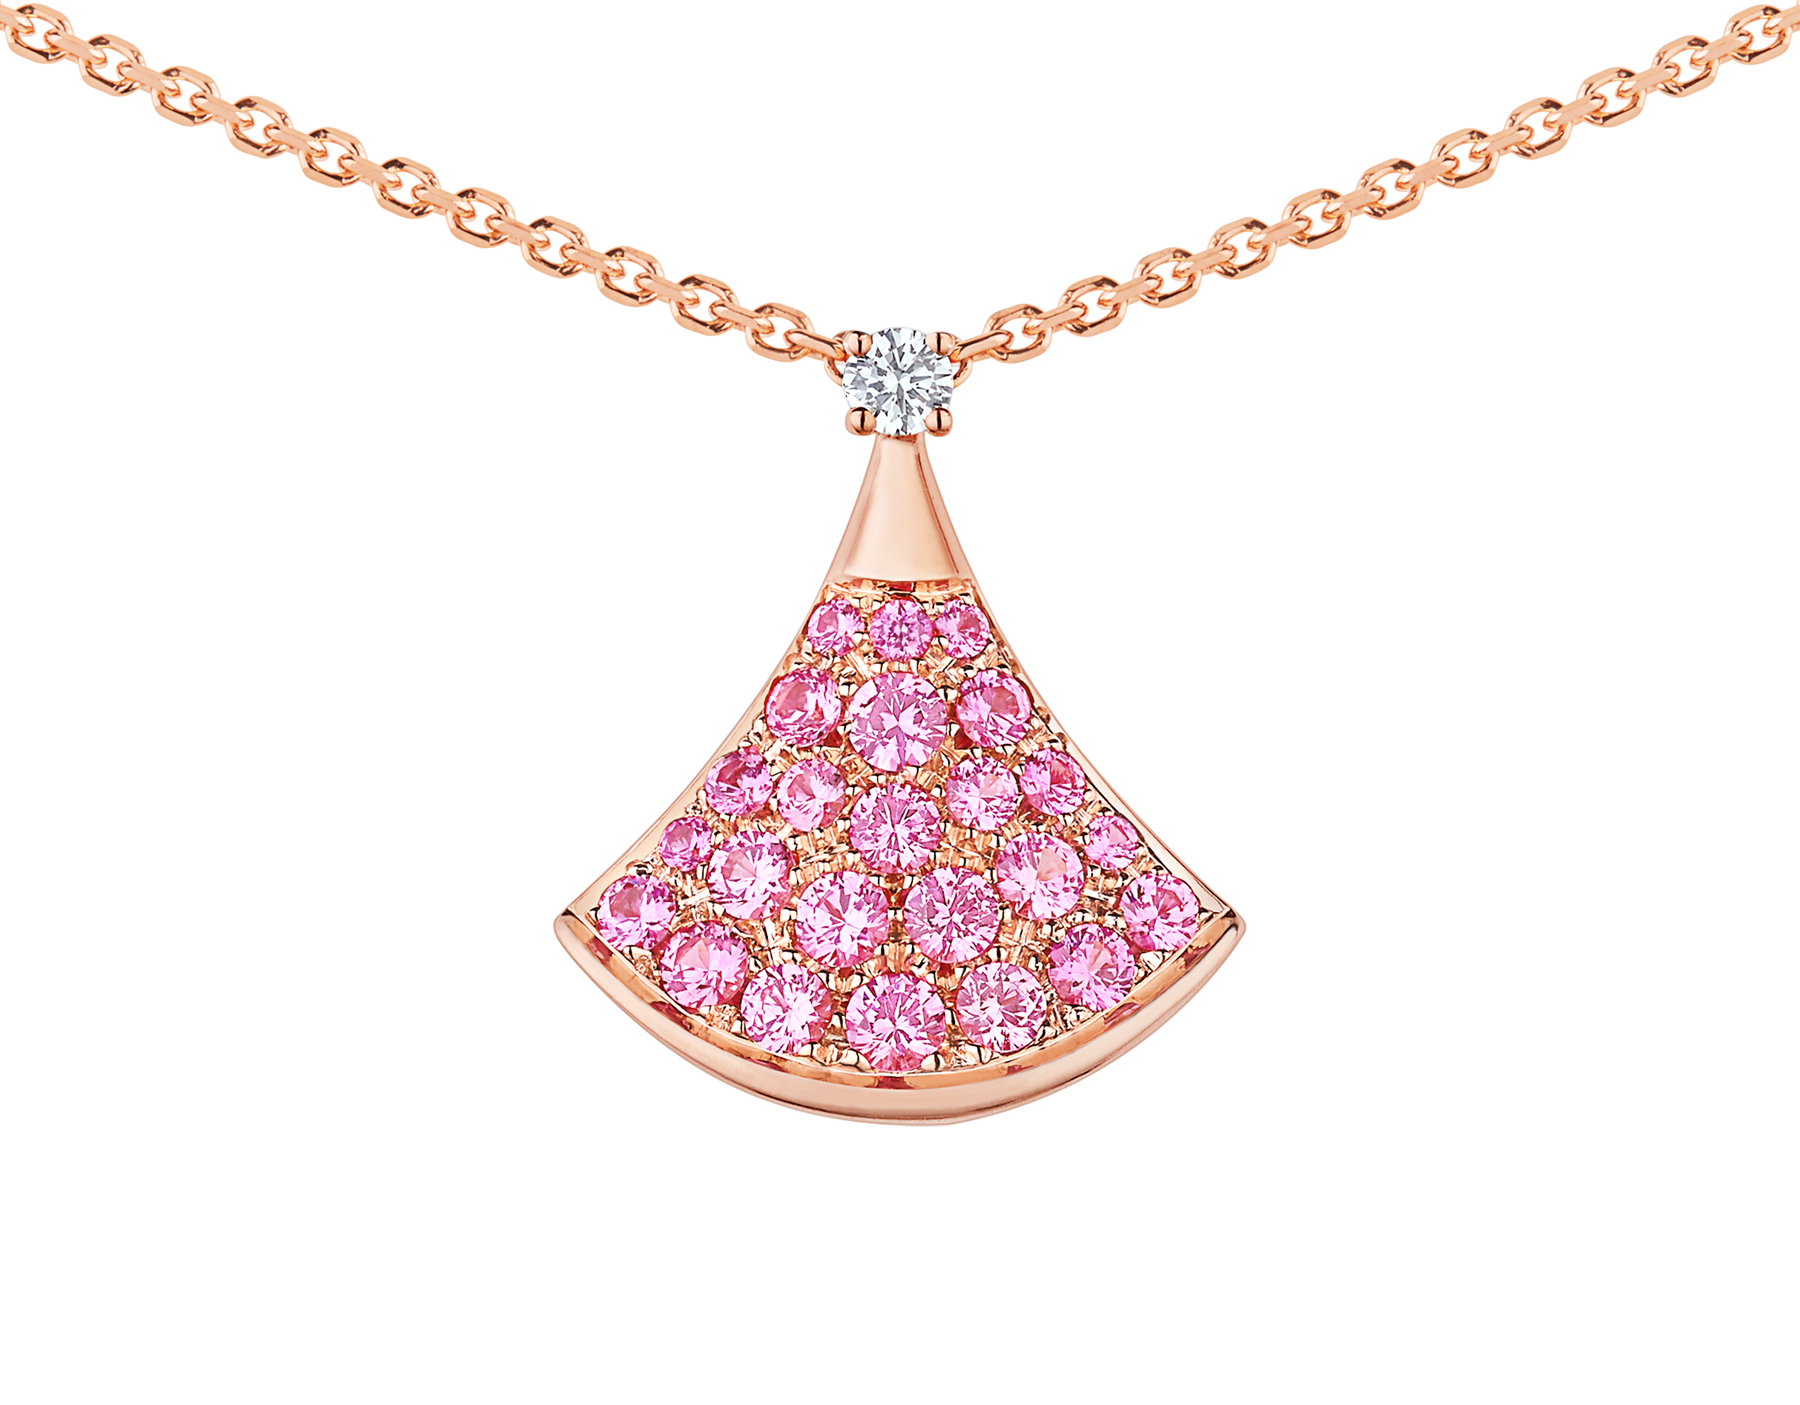 Collana con pendente DIVAS' DREAM in oro rosa 18 kt con pavé di zaffiri rosa (0,55 ct) e diamante. 355889 image 2